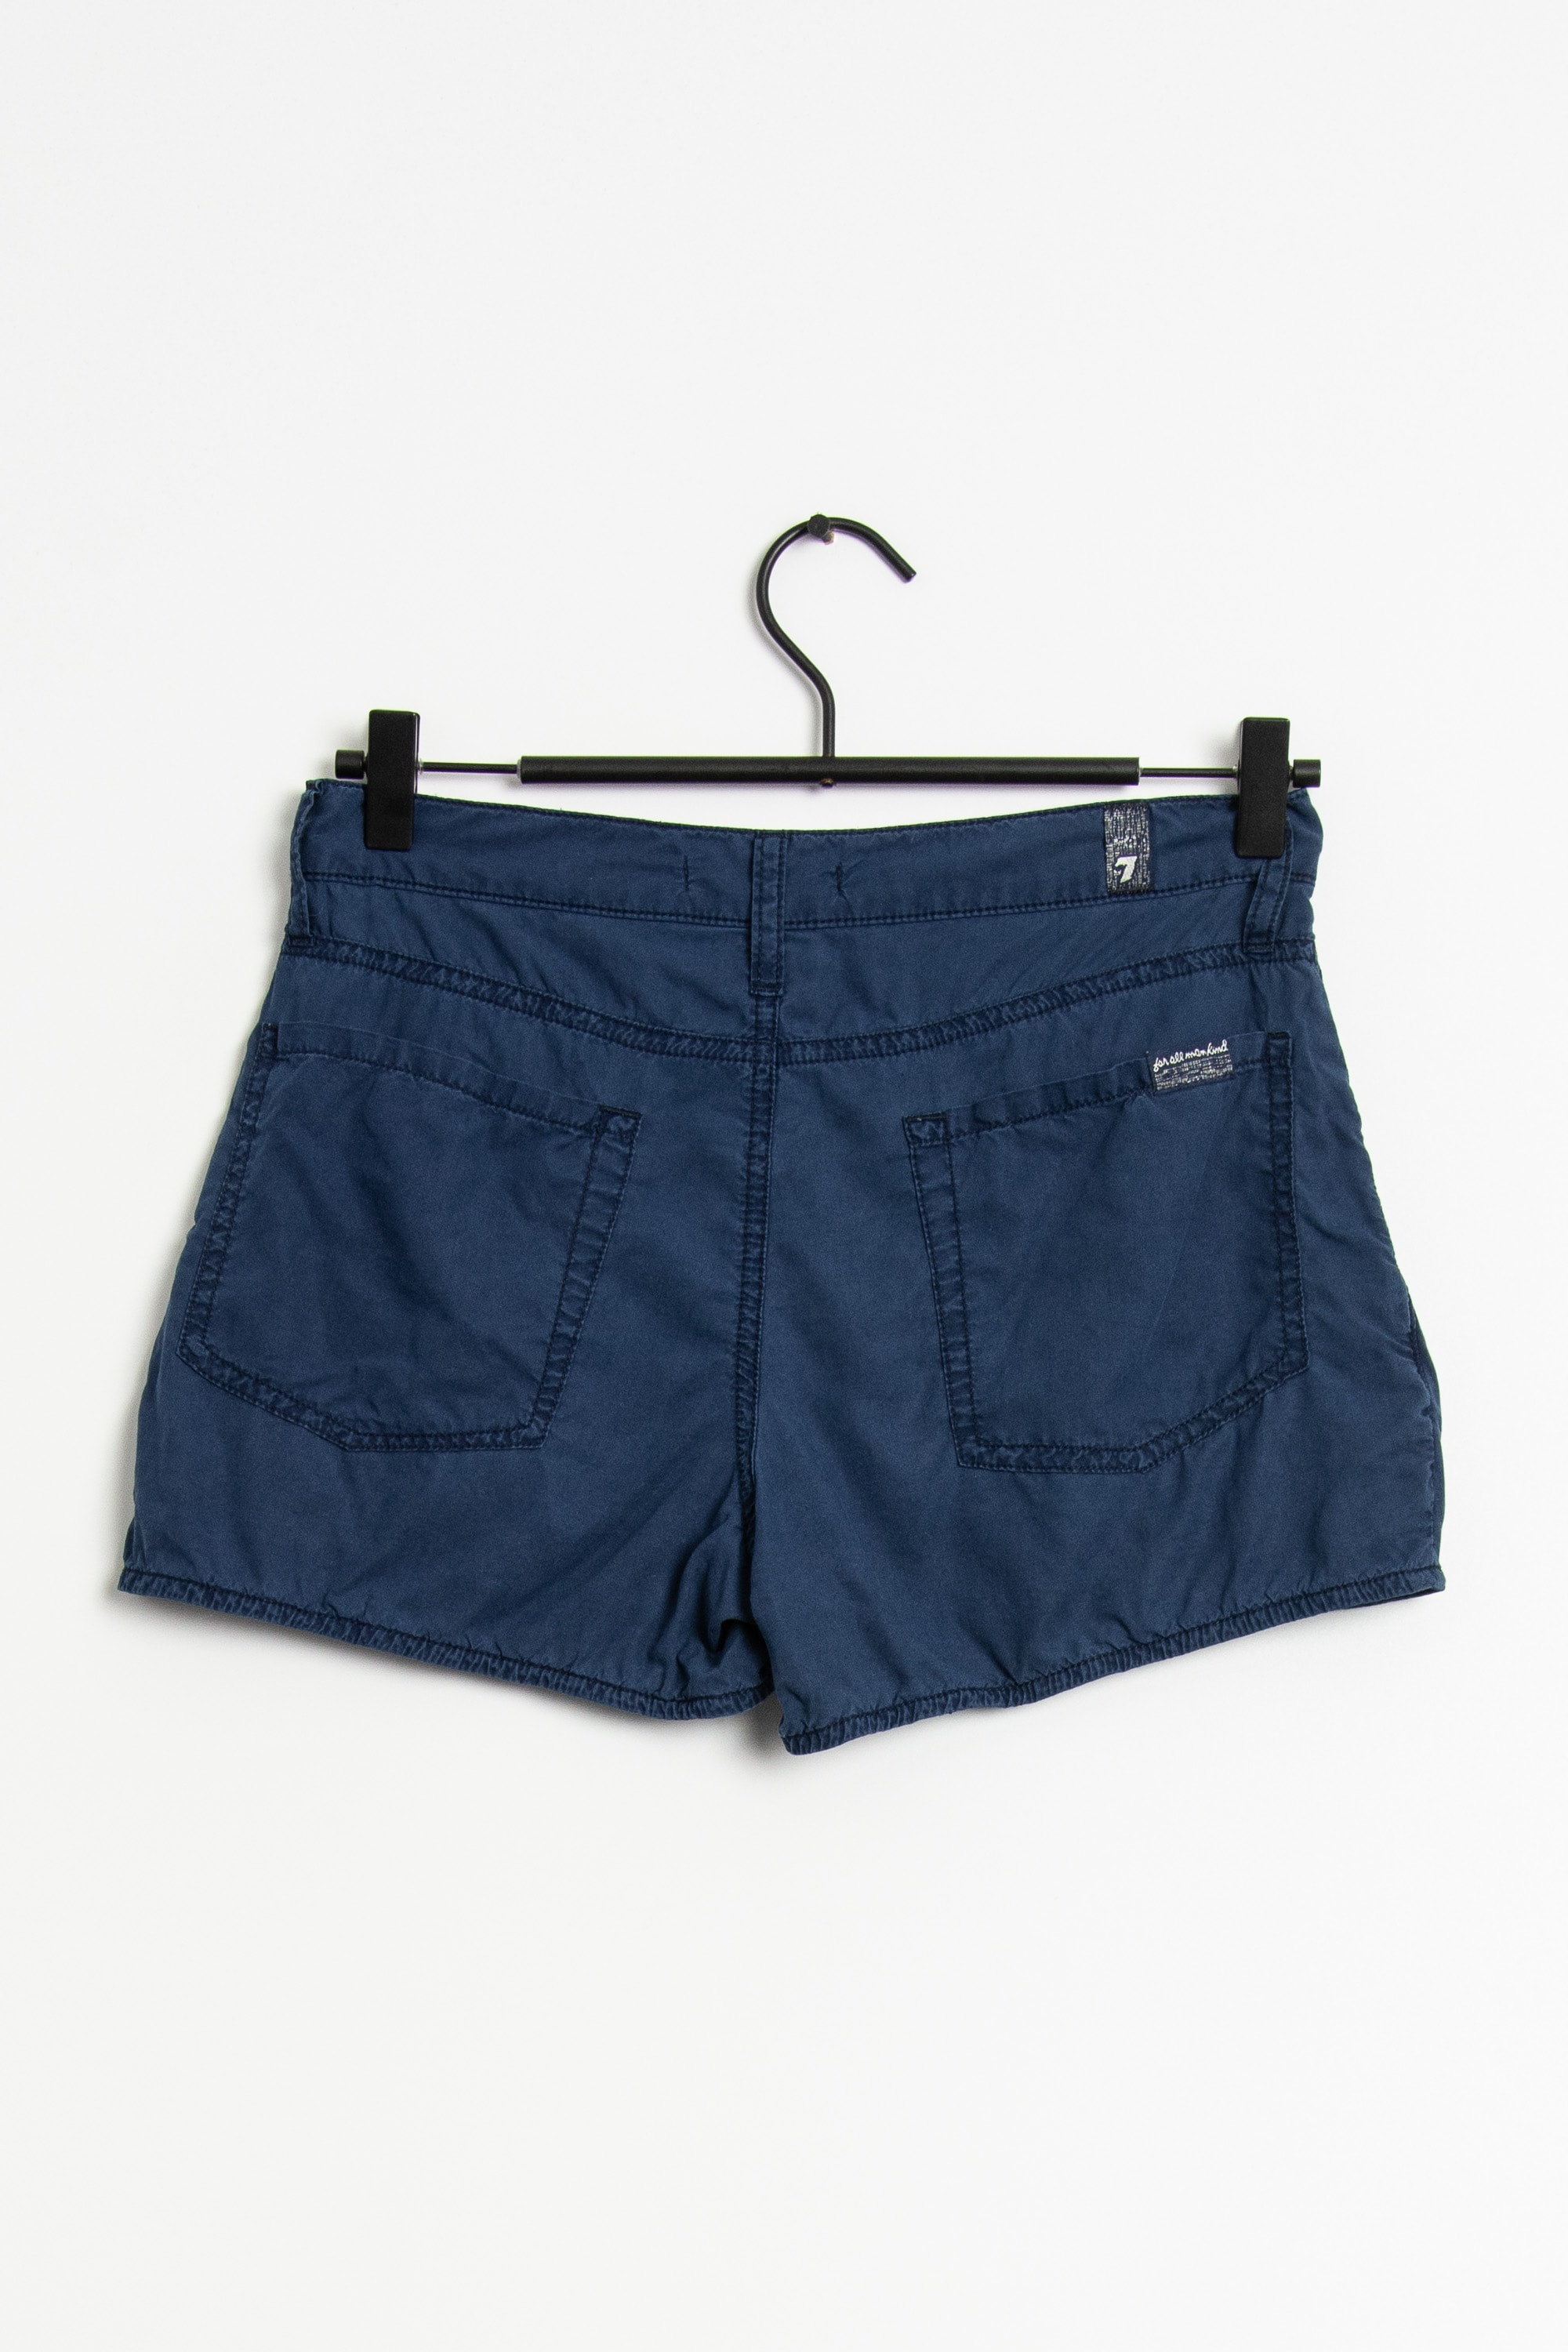 7 FOR ALL MANKIND Shorts Blau Gr.XXS